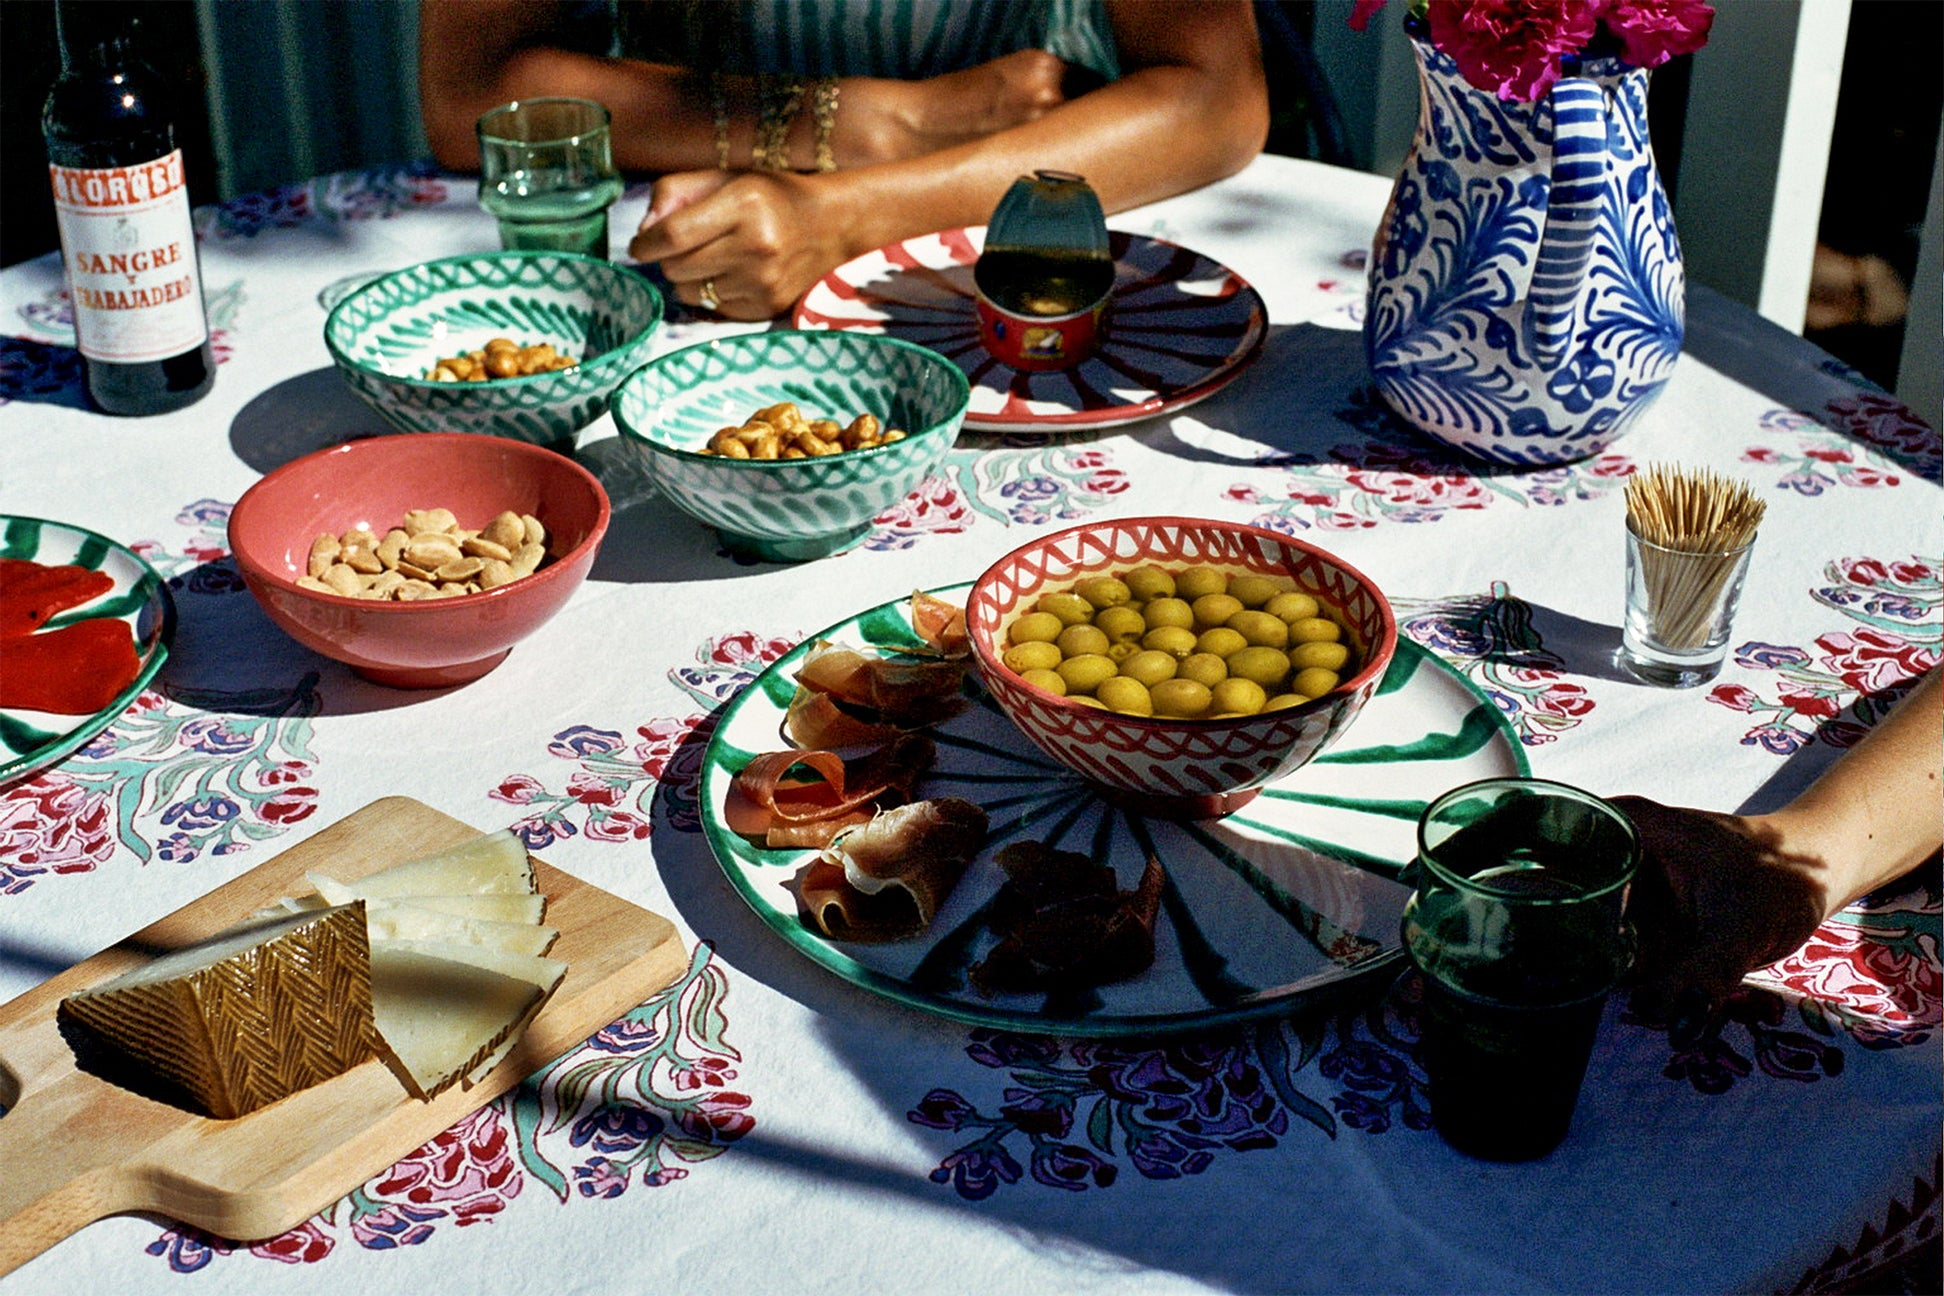 The Ultimate Summer Tapas Menu, Courtesy of Two Stylish Expats